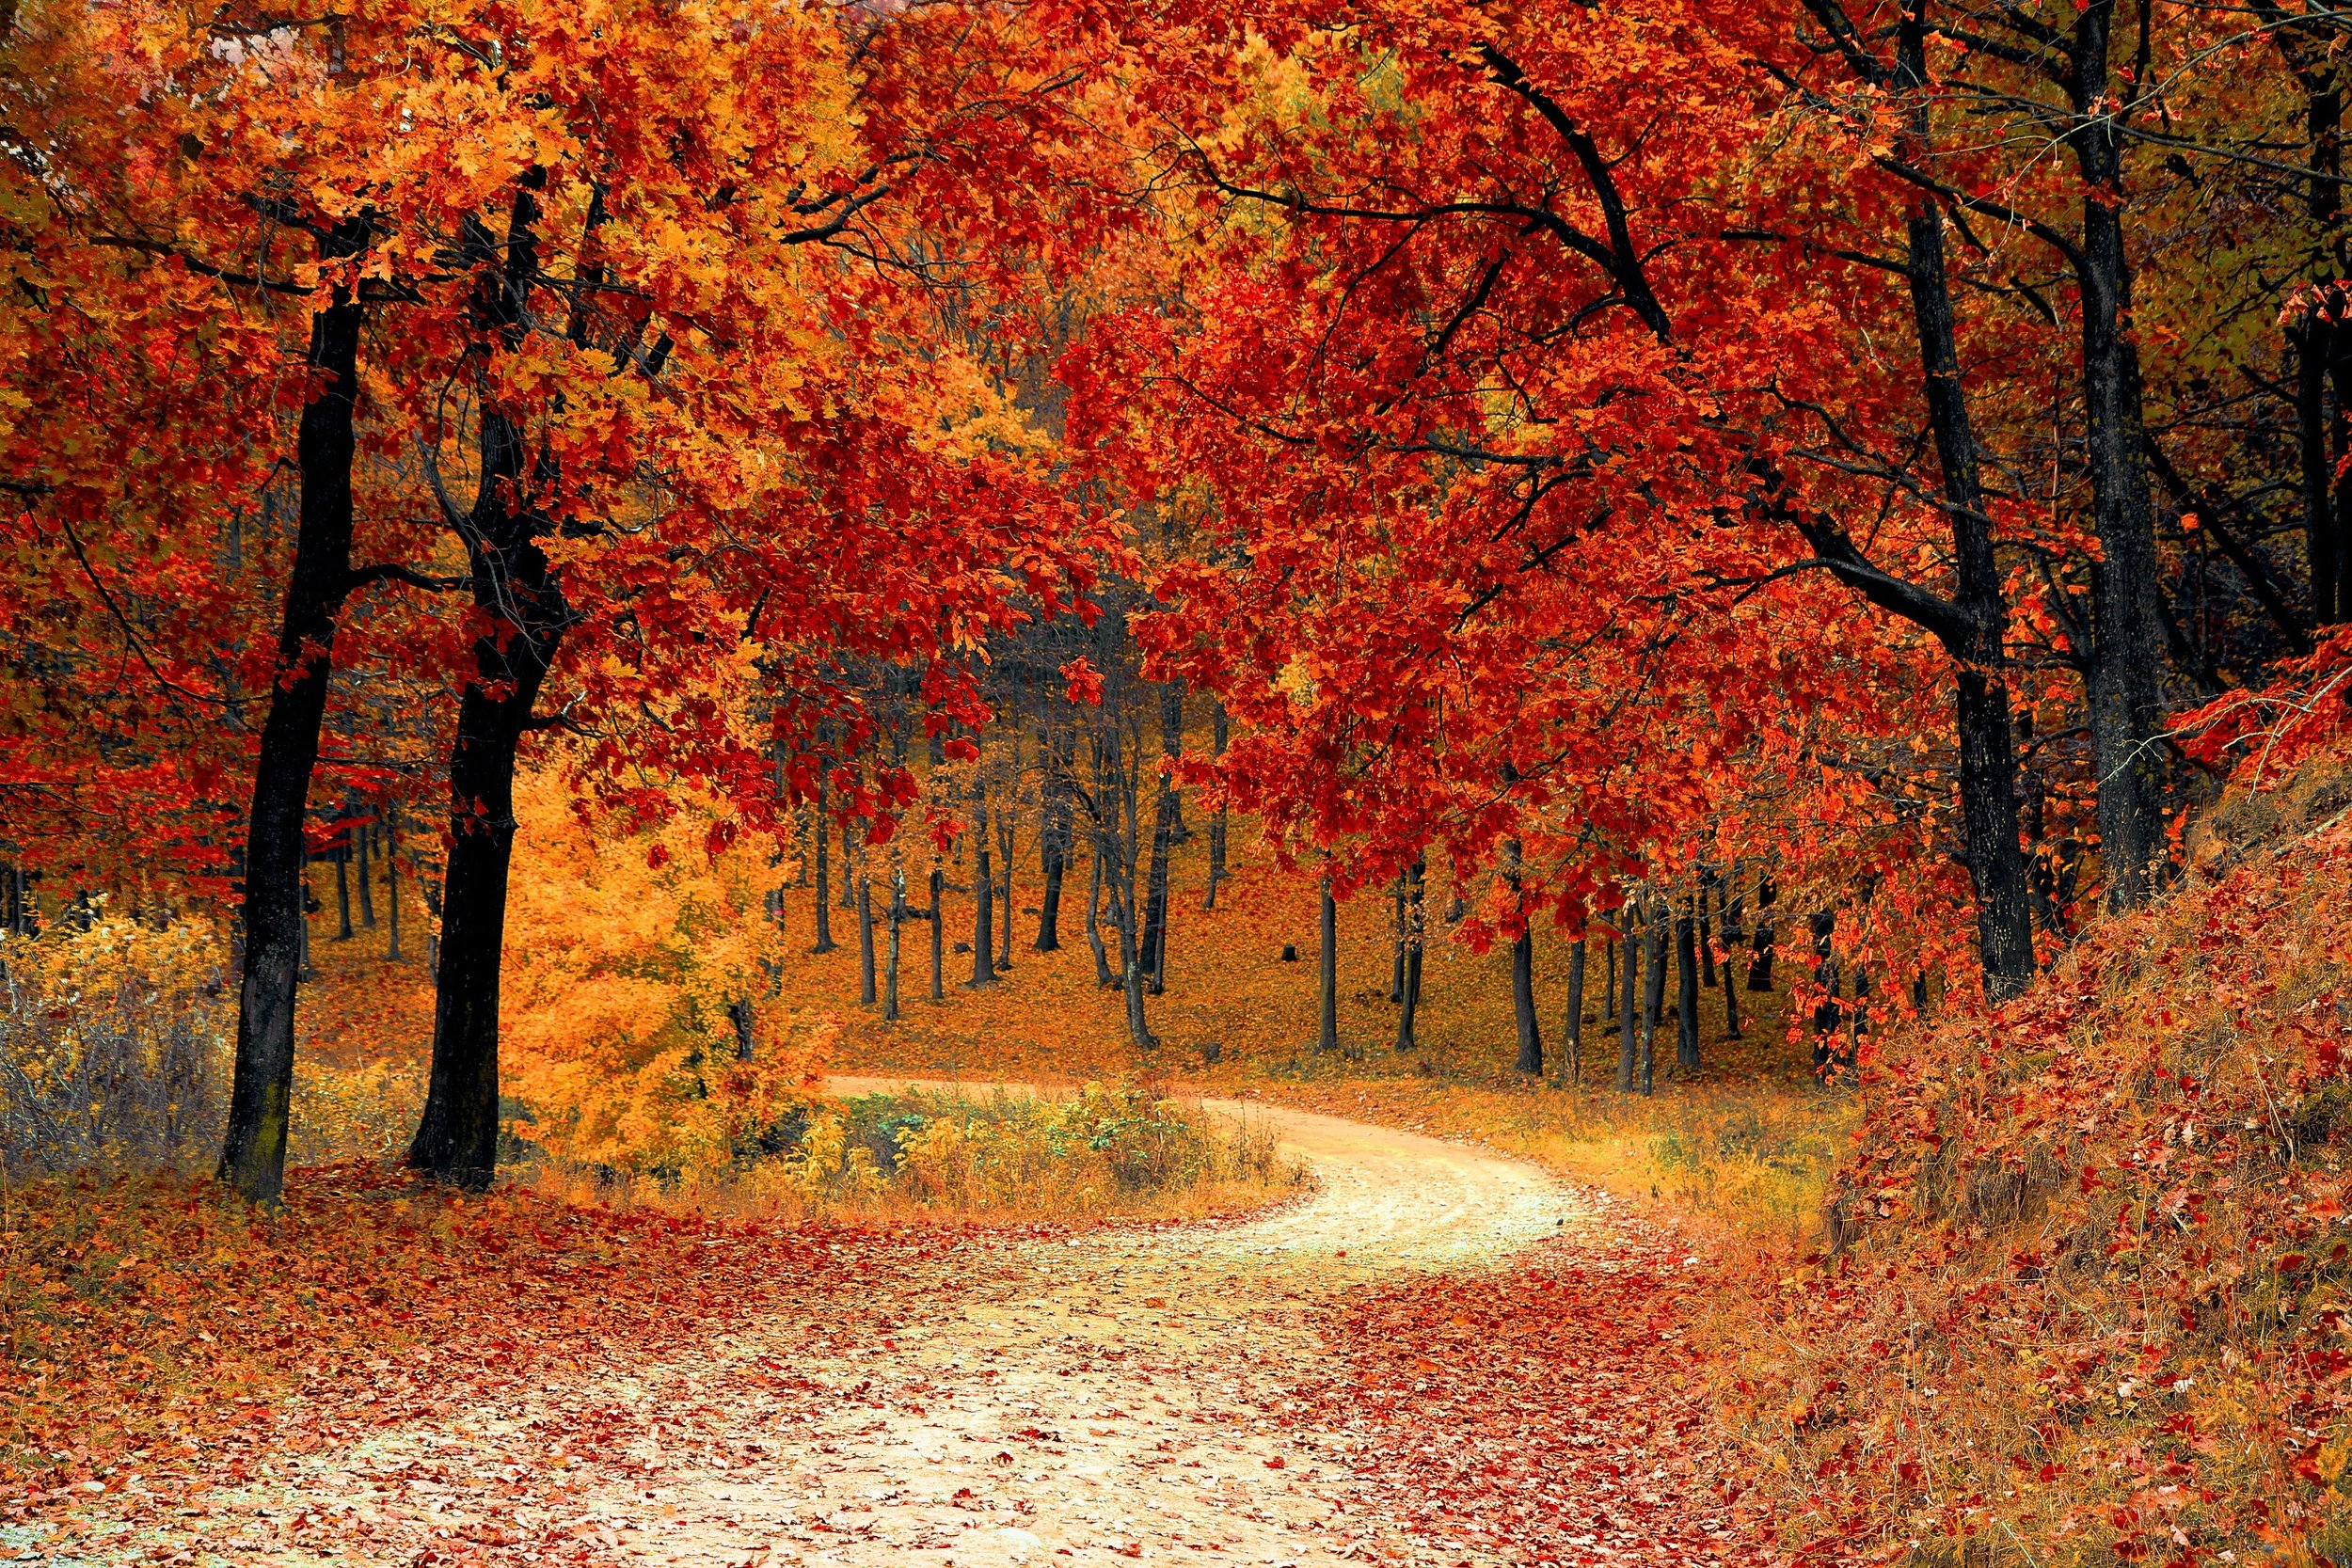 A forest pathway in the fall